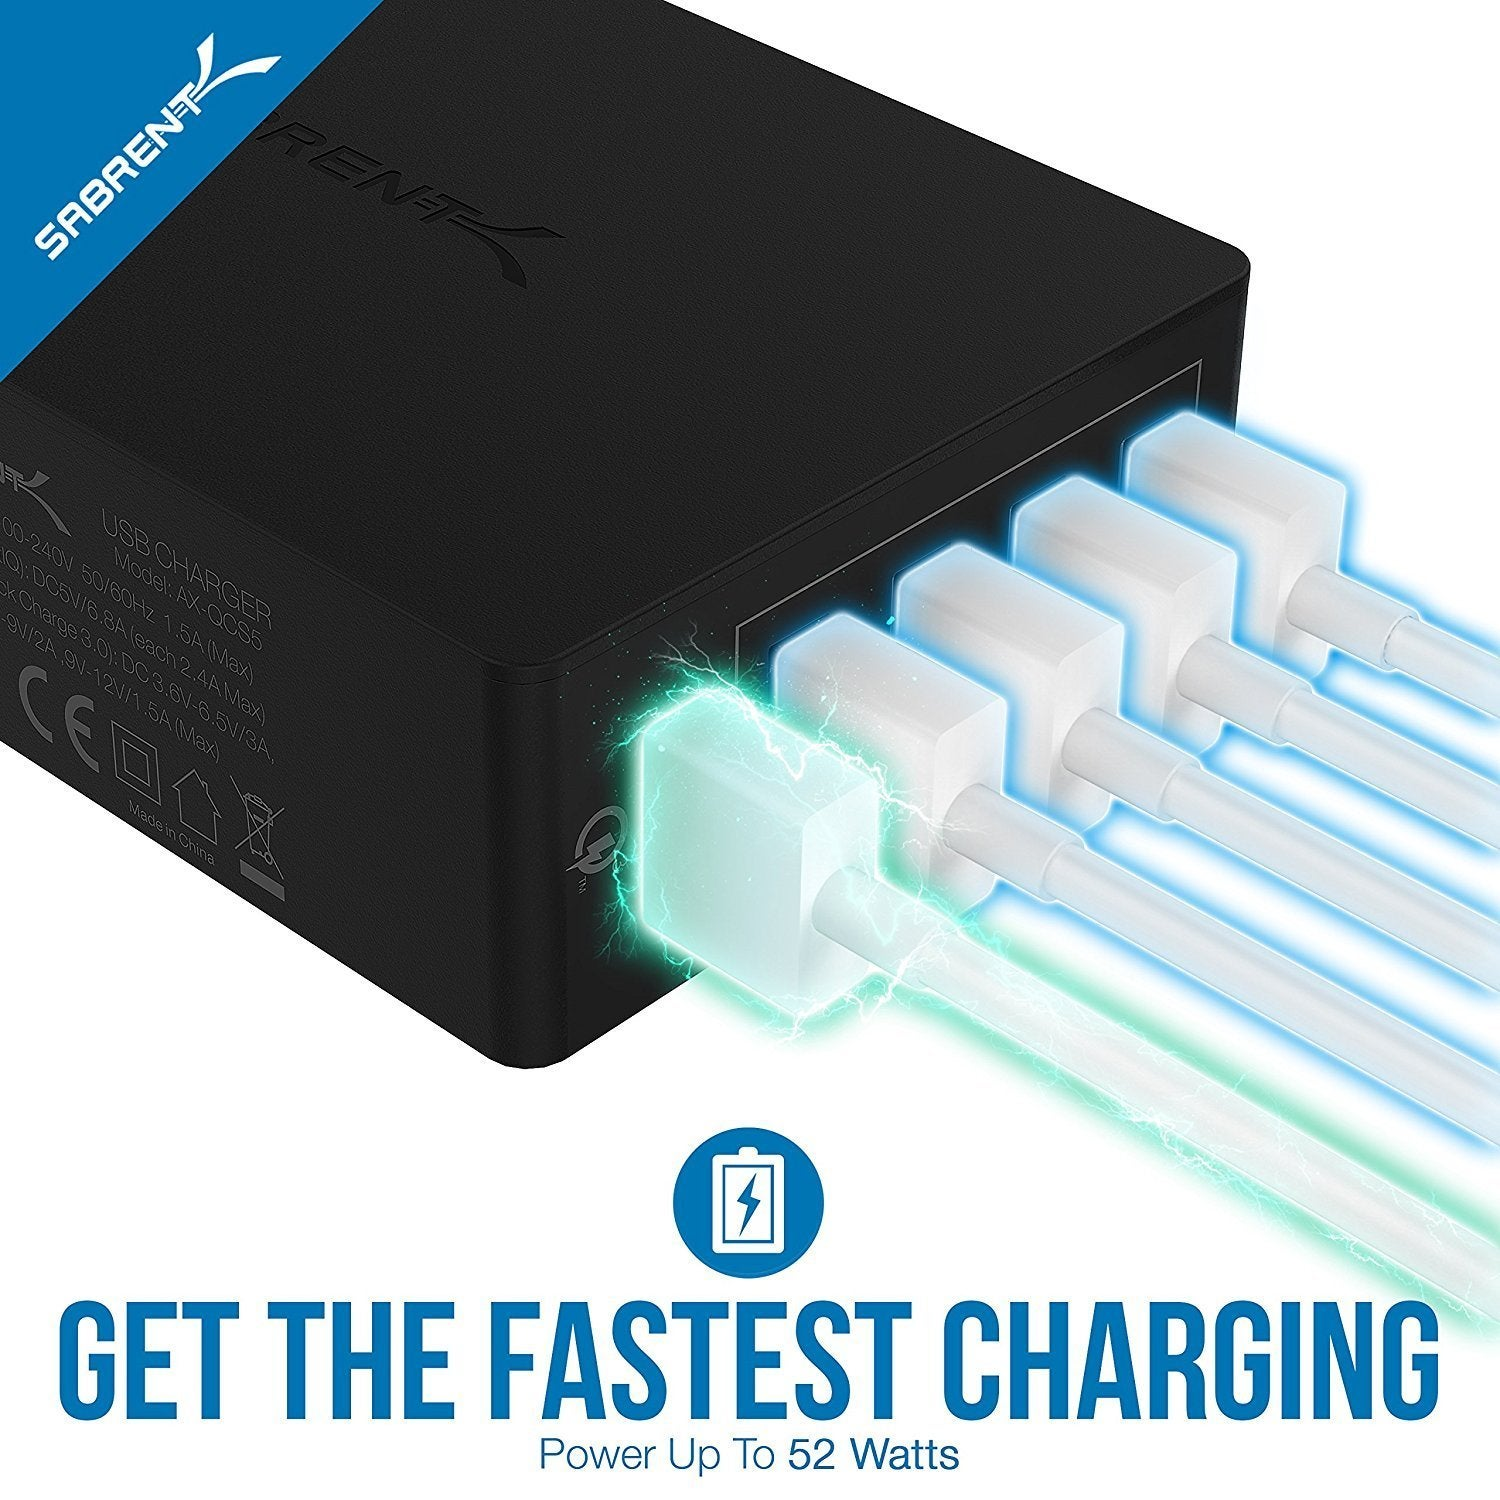 UL Certified AX-QCS5 54W 5-Port Family-Sized Desktop USB Rapid Charger Black Smart USB Charger with Auto Detect Technology Sabrent Quick Charge 3.0